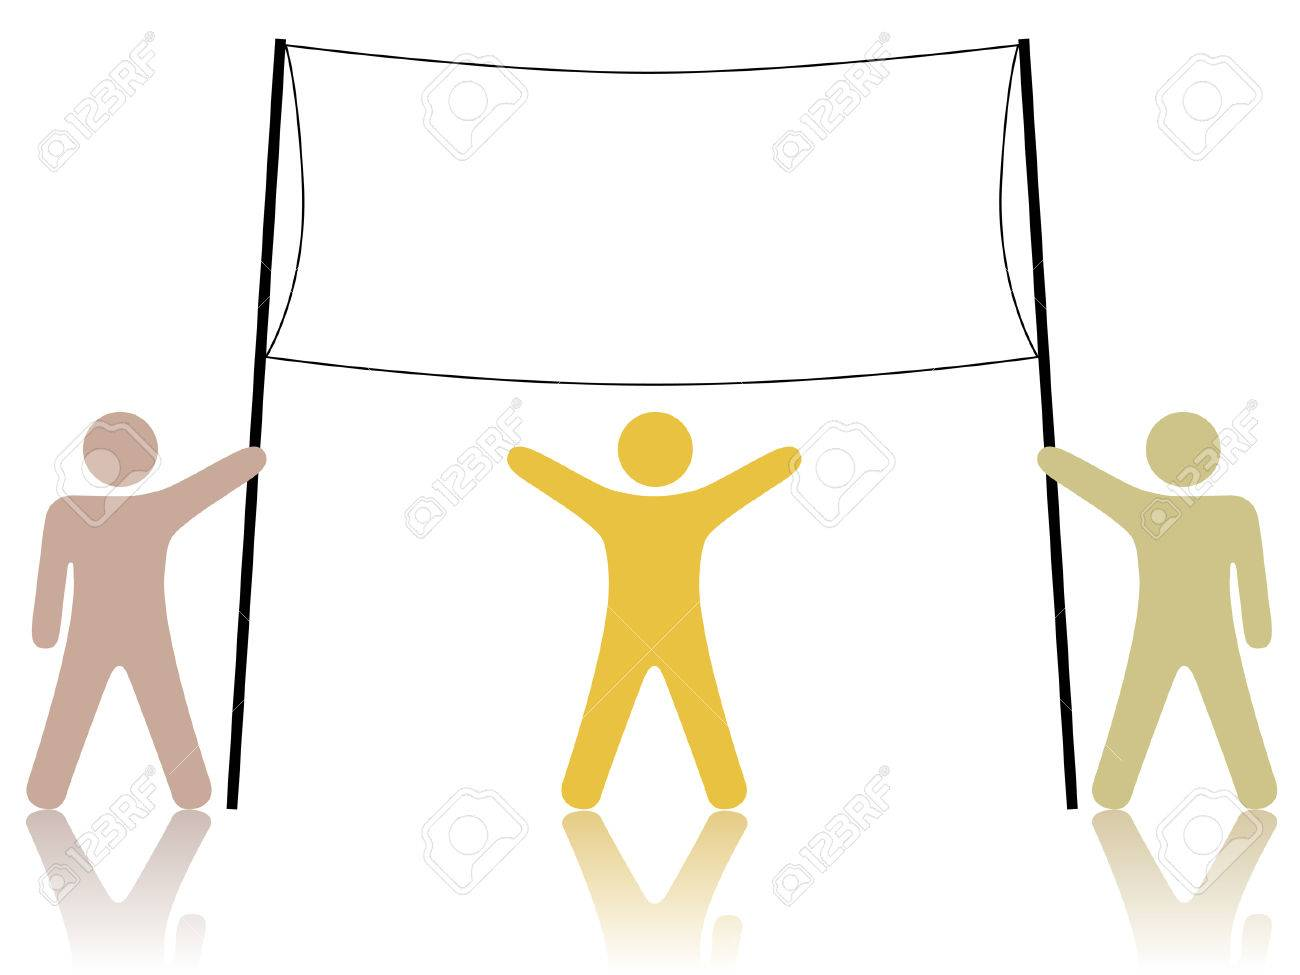 A team of three people hold up a sign, banner, or ad raised to celebrate cooperation, teamwork, winning, diversity Stock Vector - 2602034